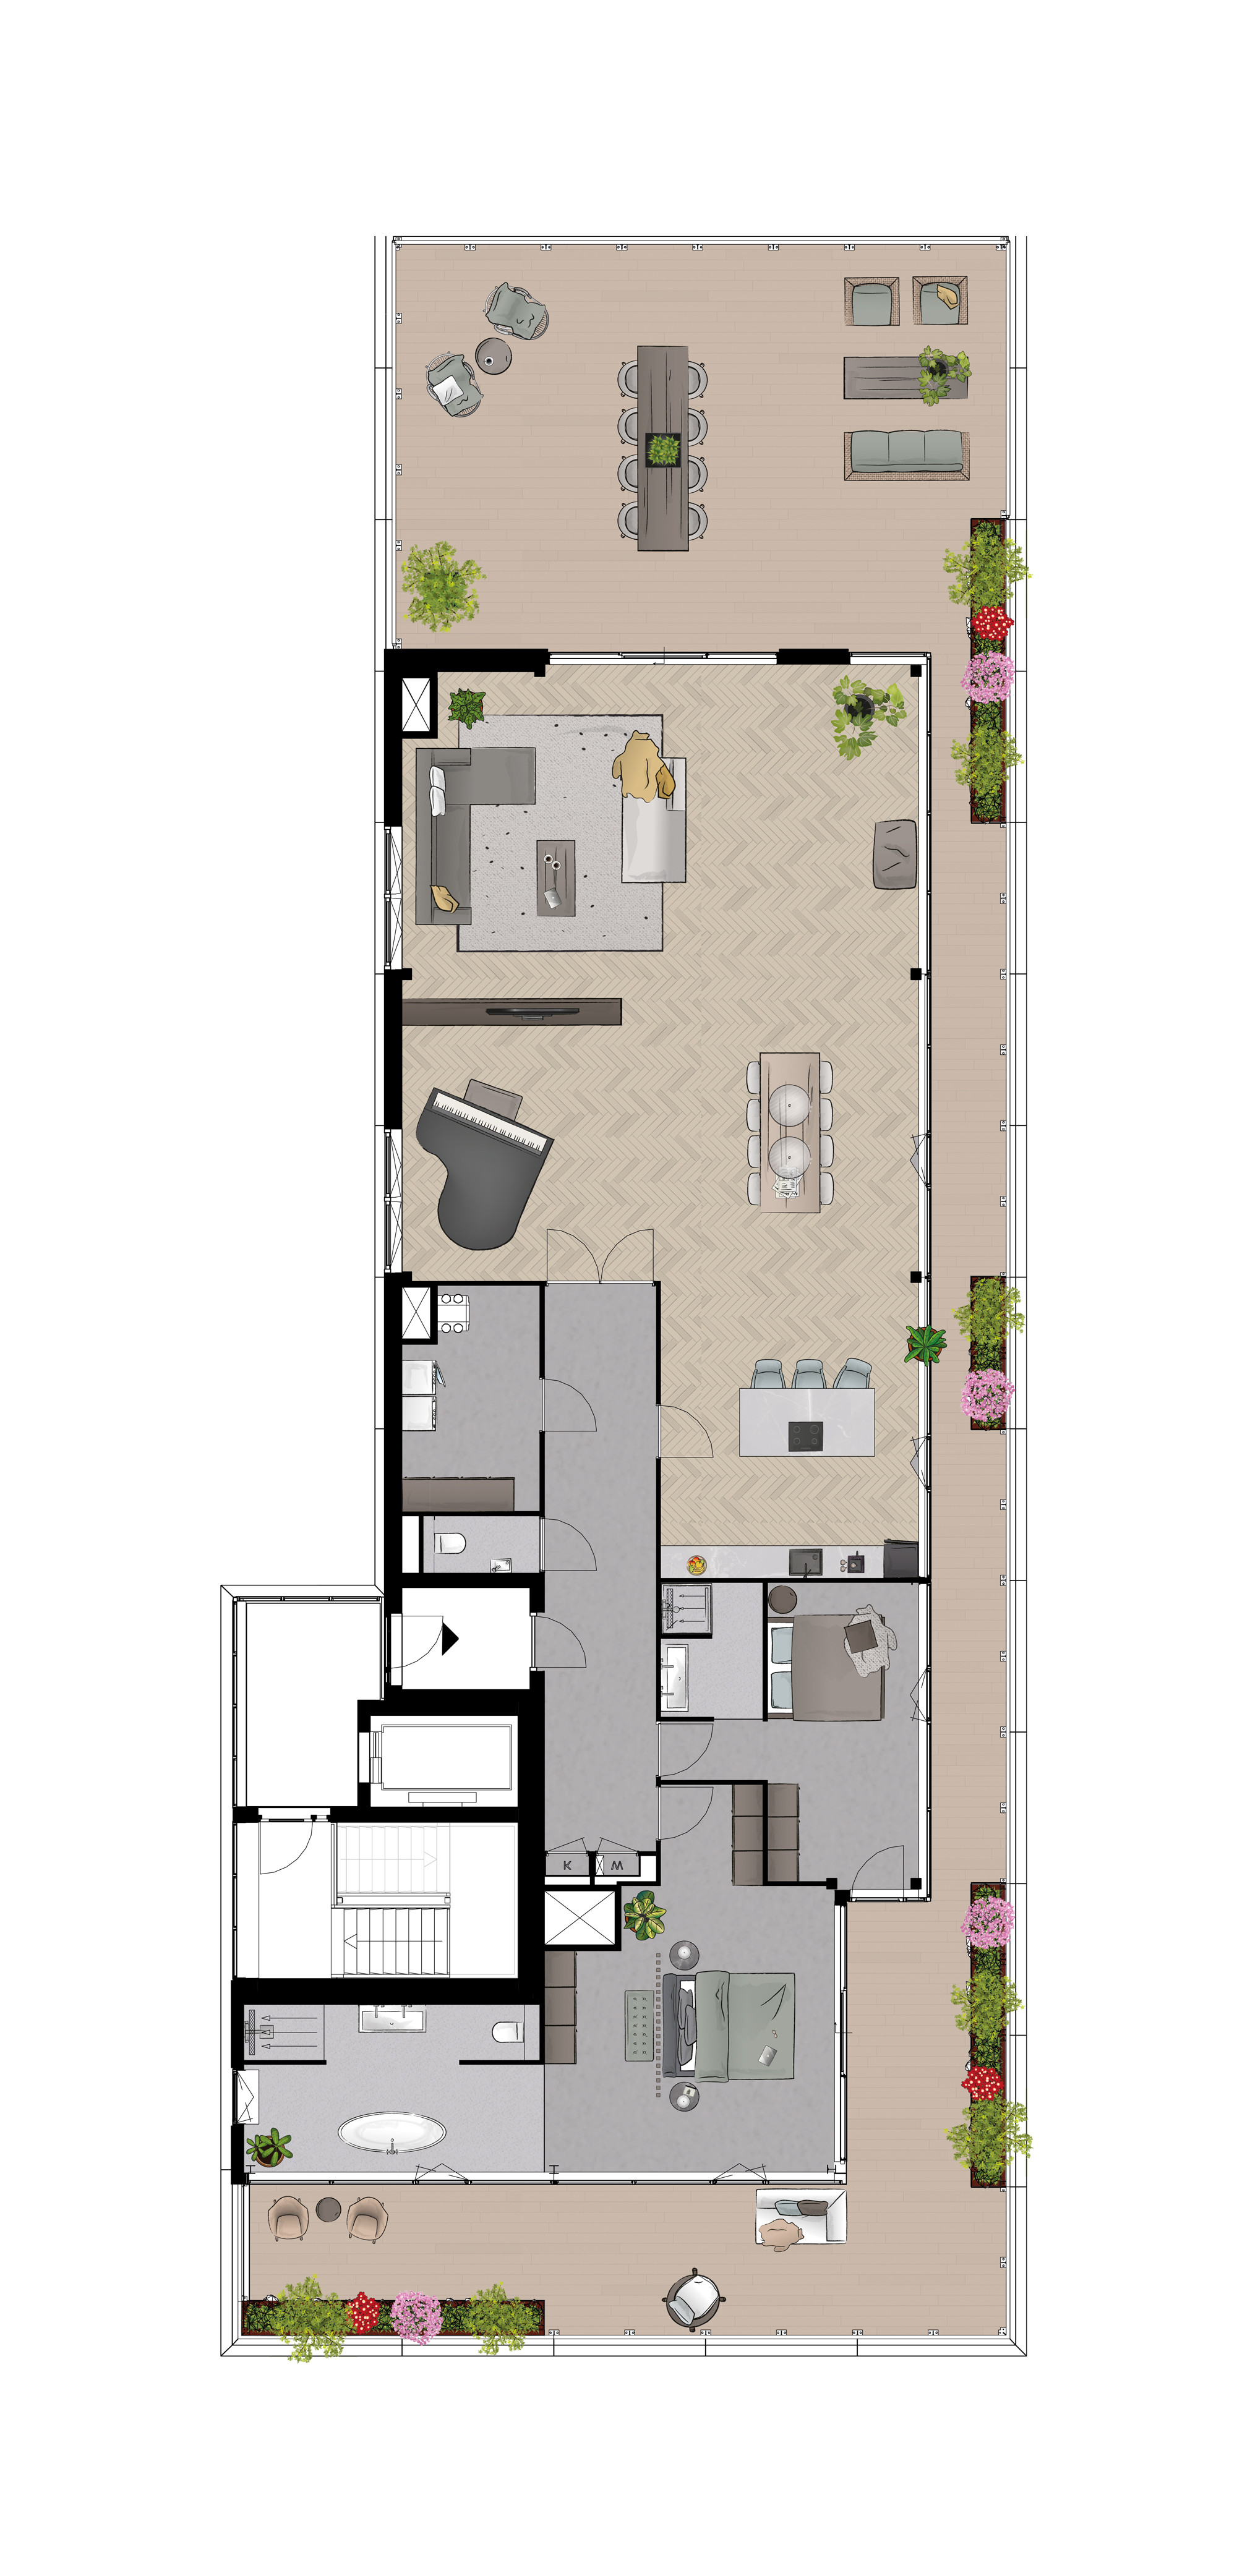 Penthouse vloer map